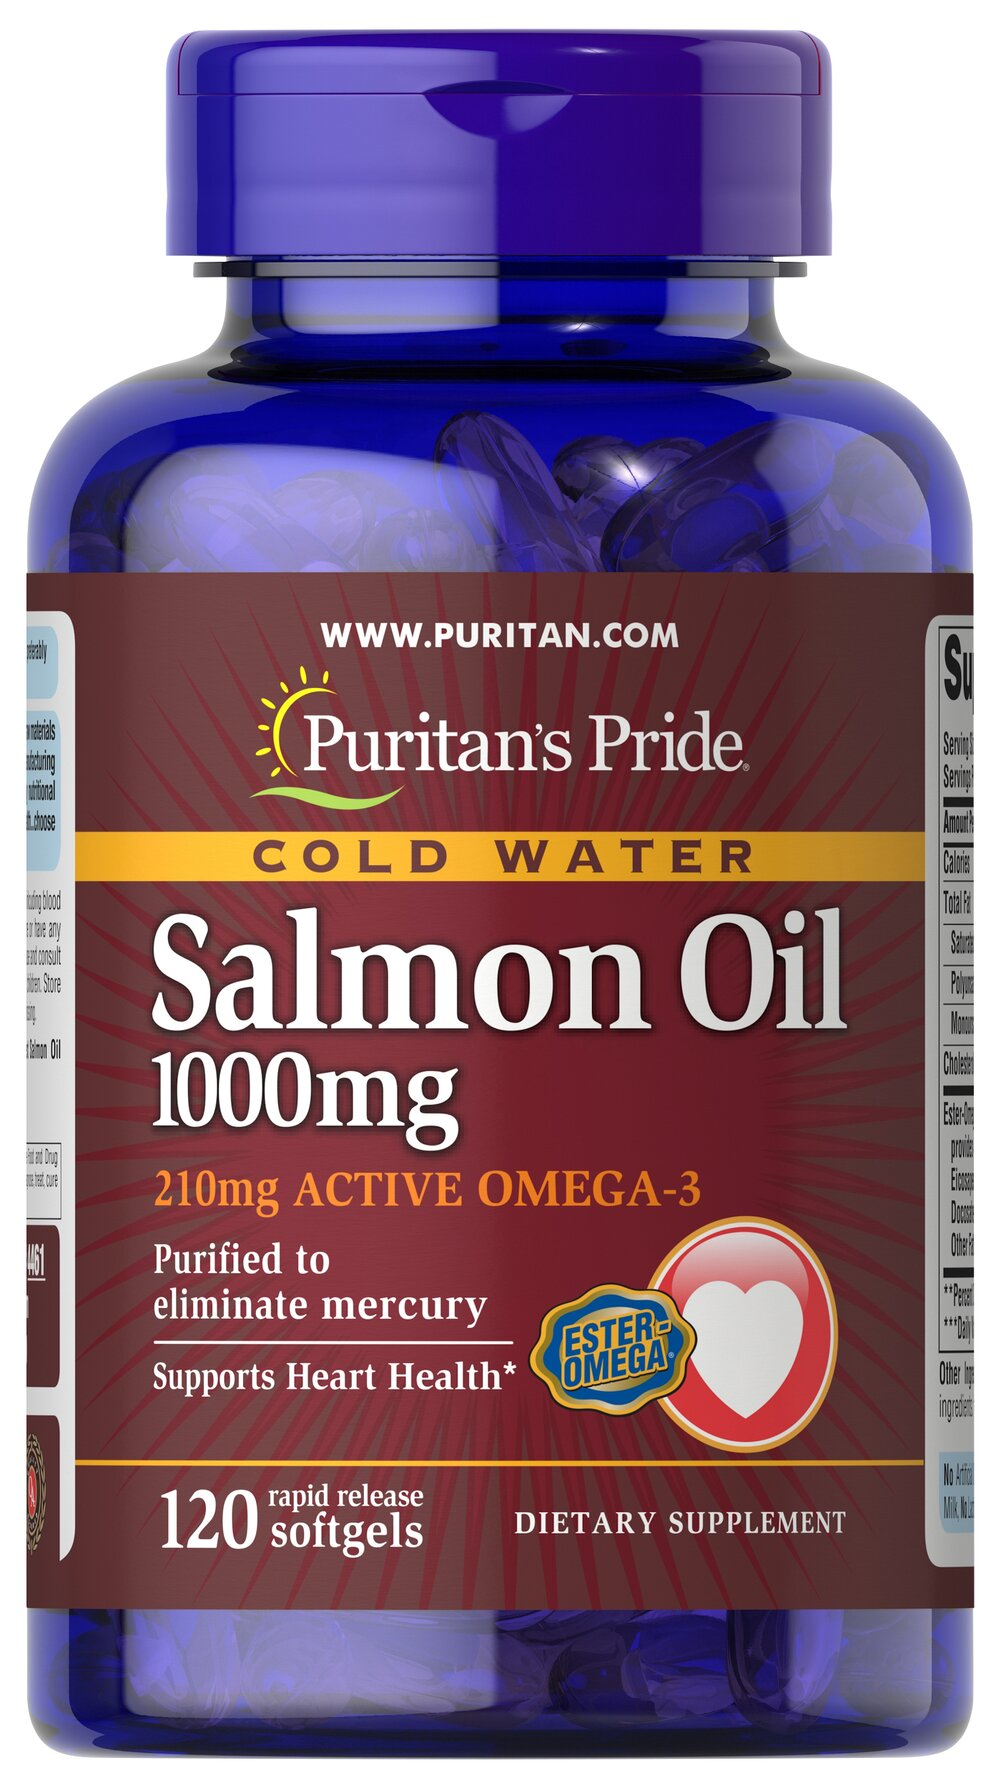 Omega-3 Salmon Oil 1000 mg (210 mg Active Omega-3) <p><strong>Purified to Eliminate Mercury</strong></p><p>Puritan's Pride Salmon Oil contains the finest Salmon Oil available. Take two softgels two times a day to gain the essential fatty acids your body needs for good health.** Salmon contains a high concentration of Omega-3 fatty acids that have been shown to help promote metabolic, circulatory and heart health.**</p> 120 Softgels 1000 mg $20.99